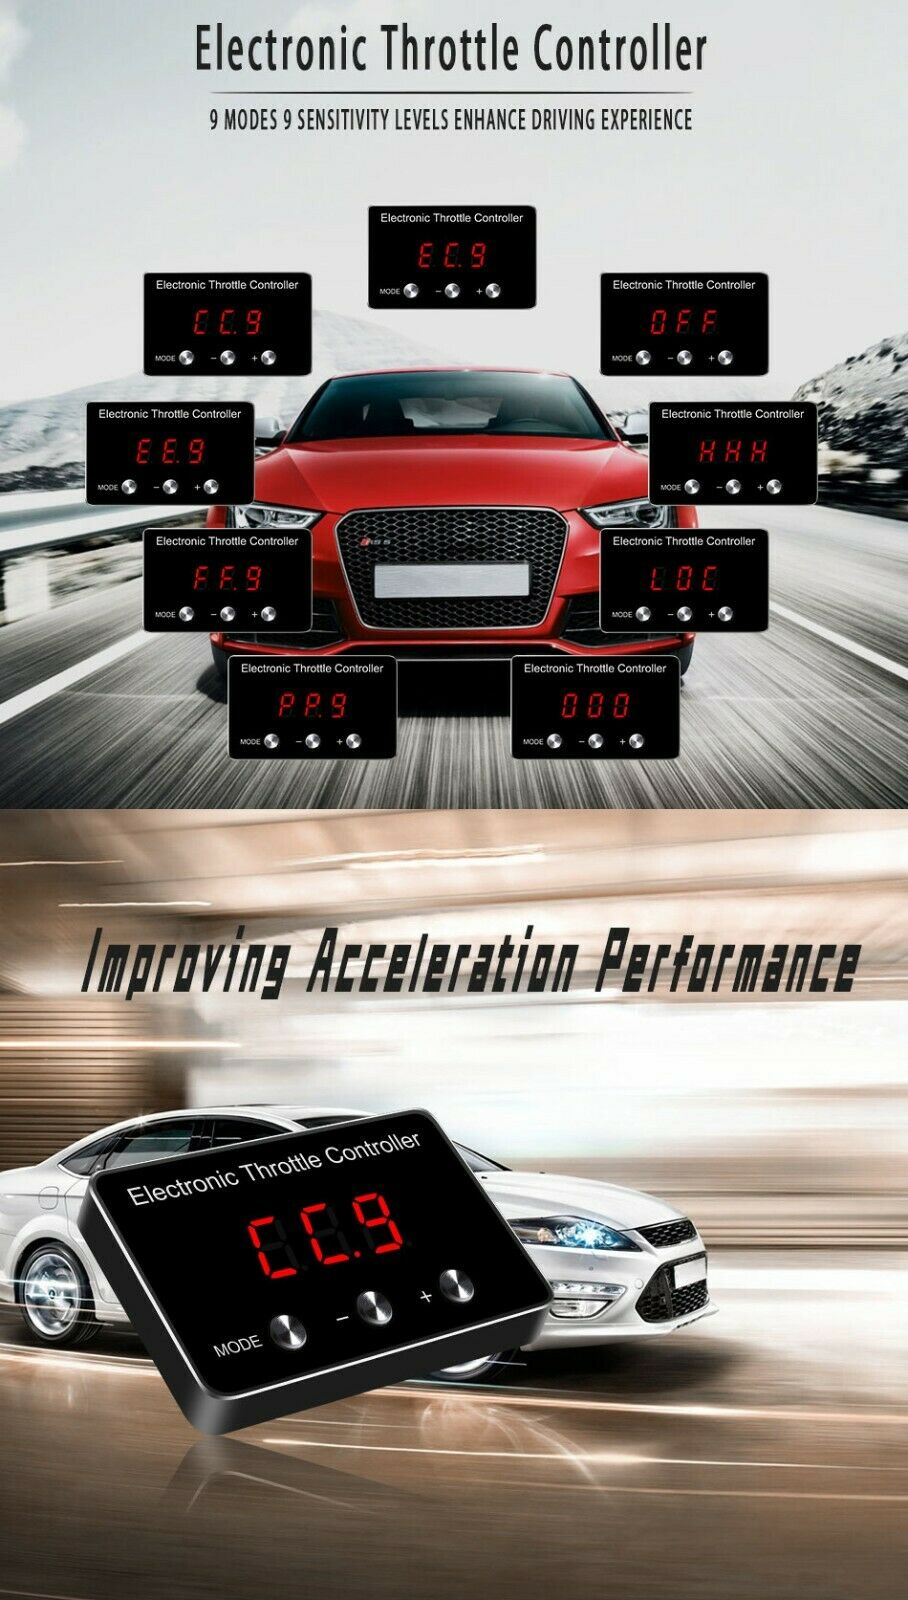 Electronic Throttle Controller Accelerator For Dodge Journey Caliber Avenger Ebay